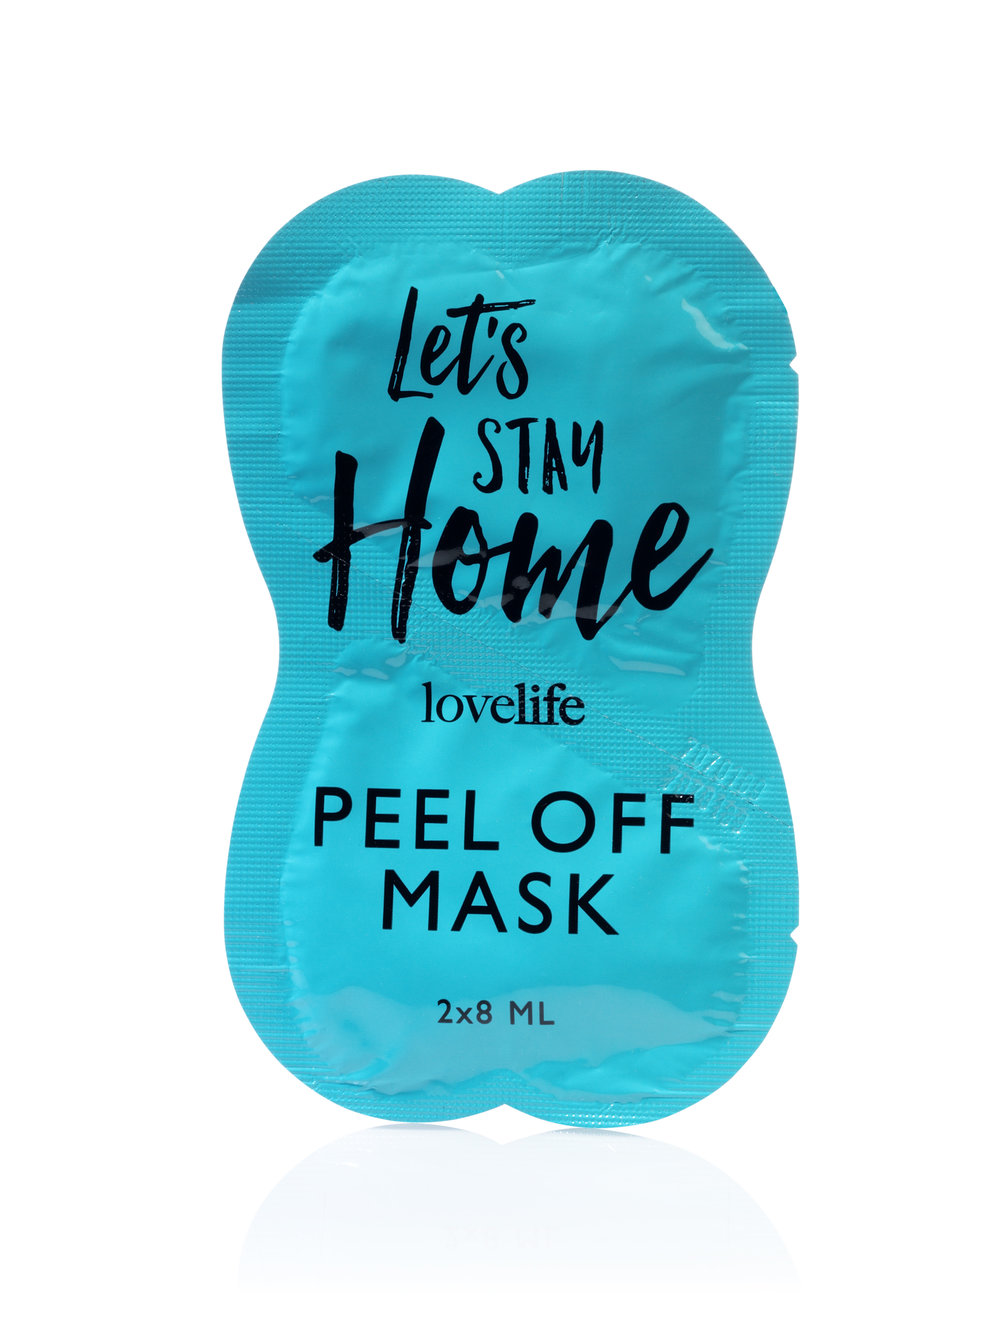 Lovelife Let's Stay Home Peeloff Facial Mask